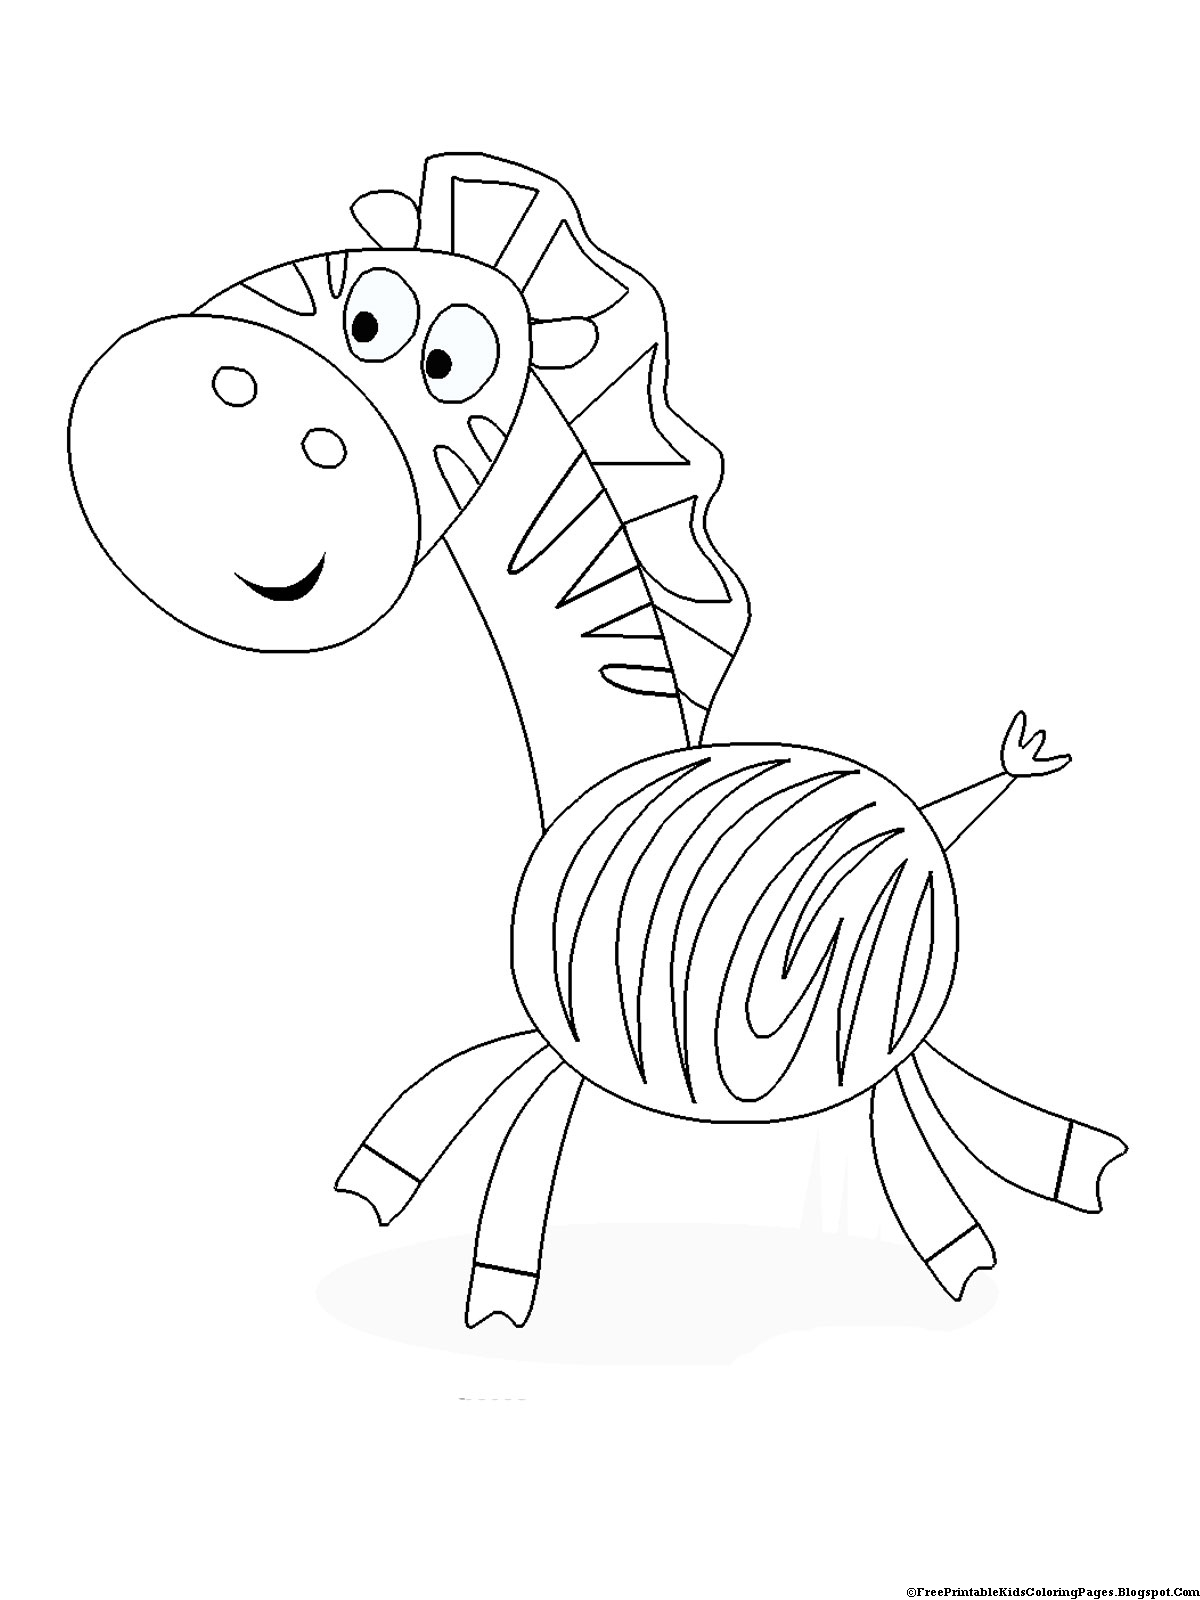 zebra print coloring pages strong zebra coloring page download print online pages zebra coloring print